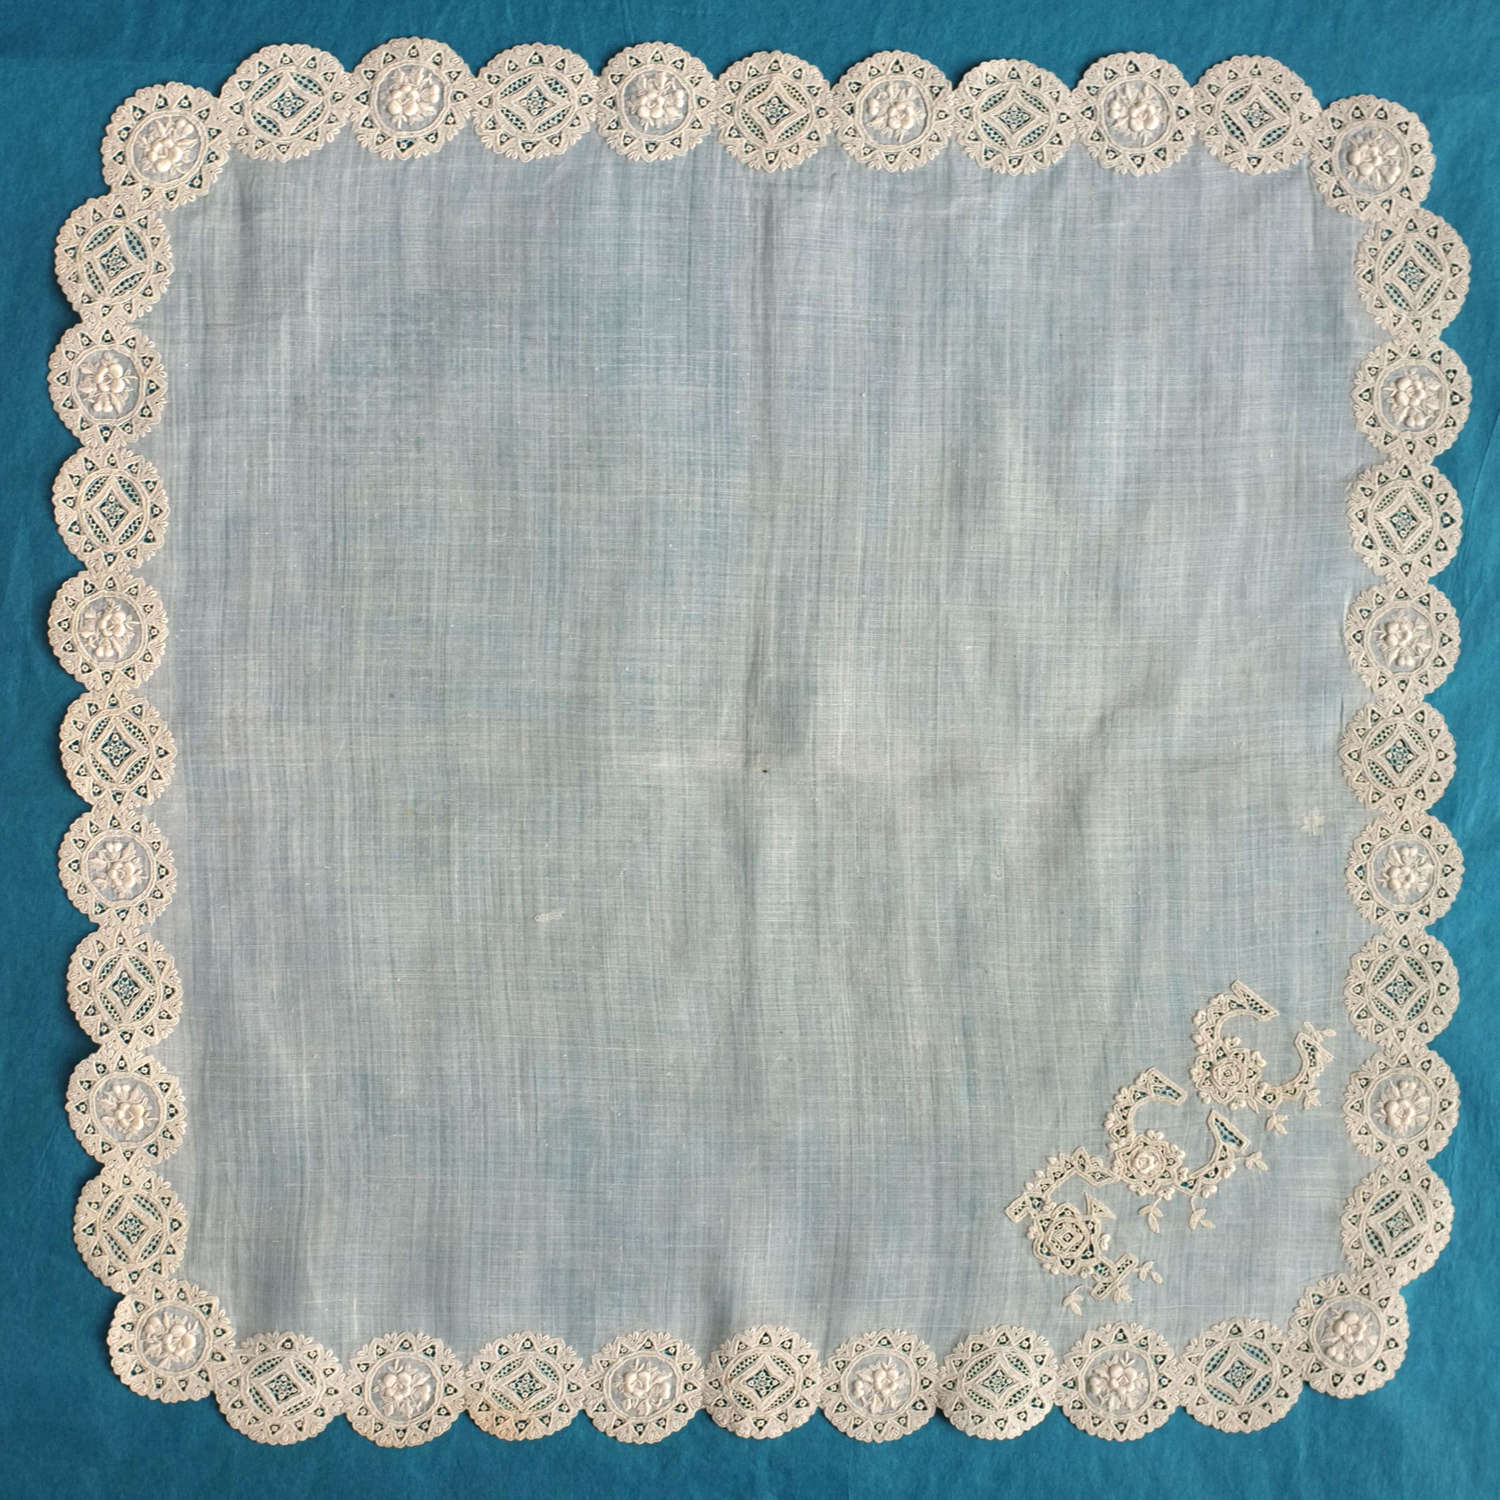 19th Century Whitework and Needle Lace Handkerchief with FCC Monogram